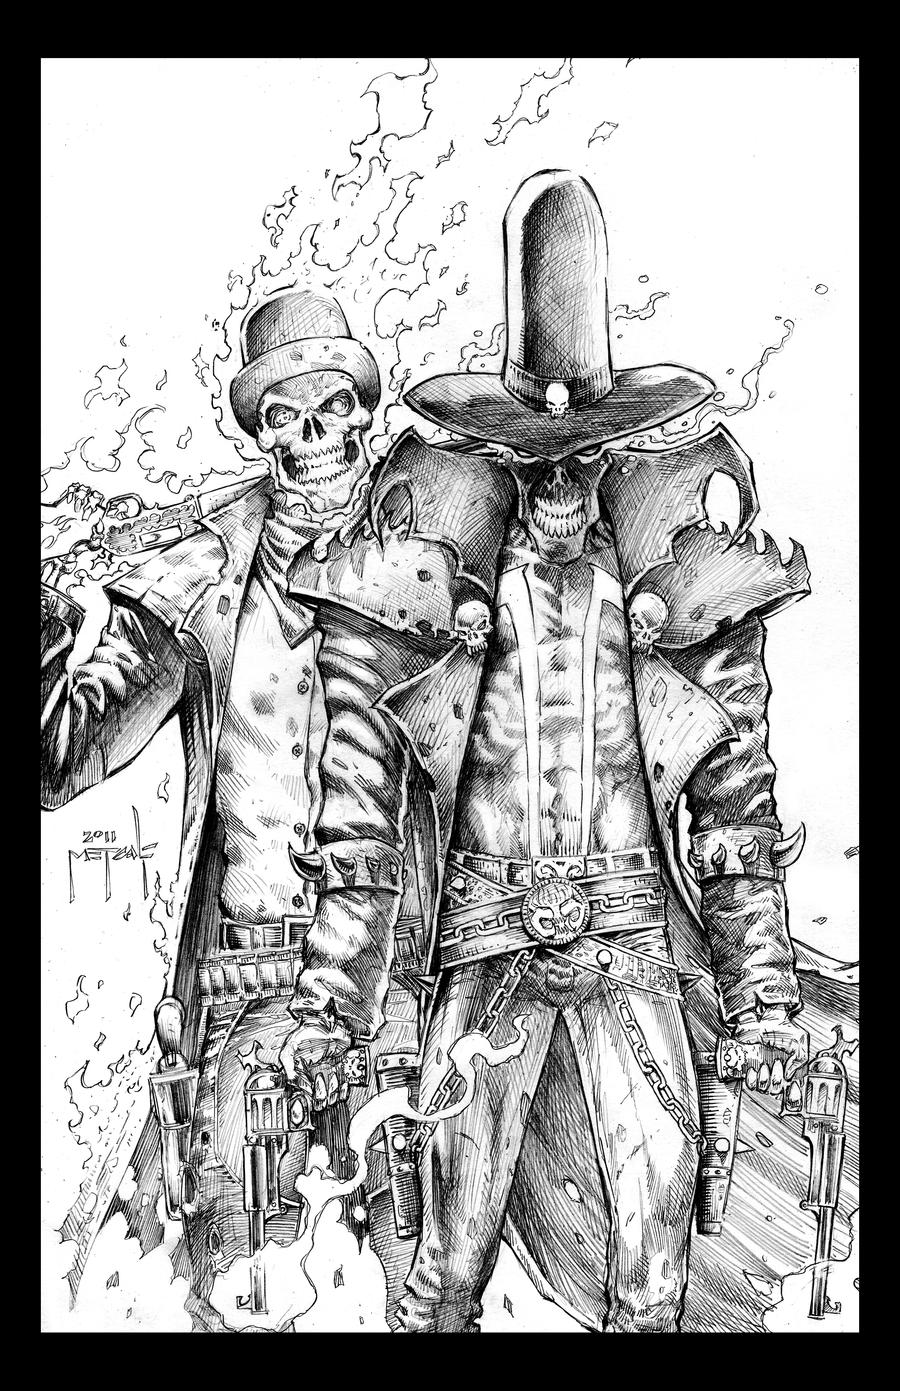 Cowboy Ghost Rider and Spawn by JasonMetcalf on DeviantArt